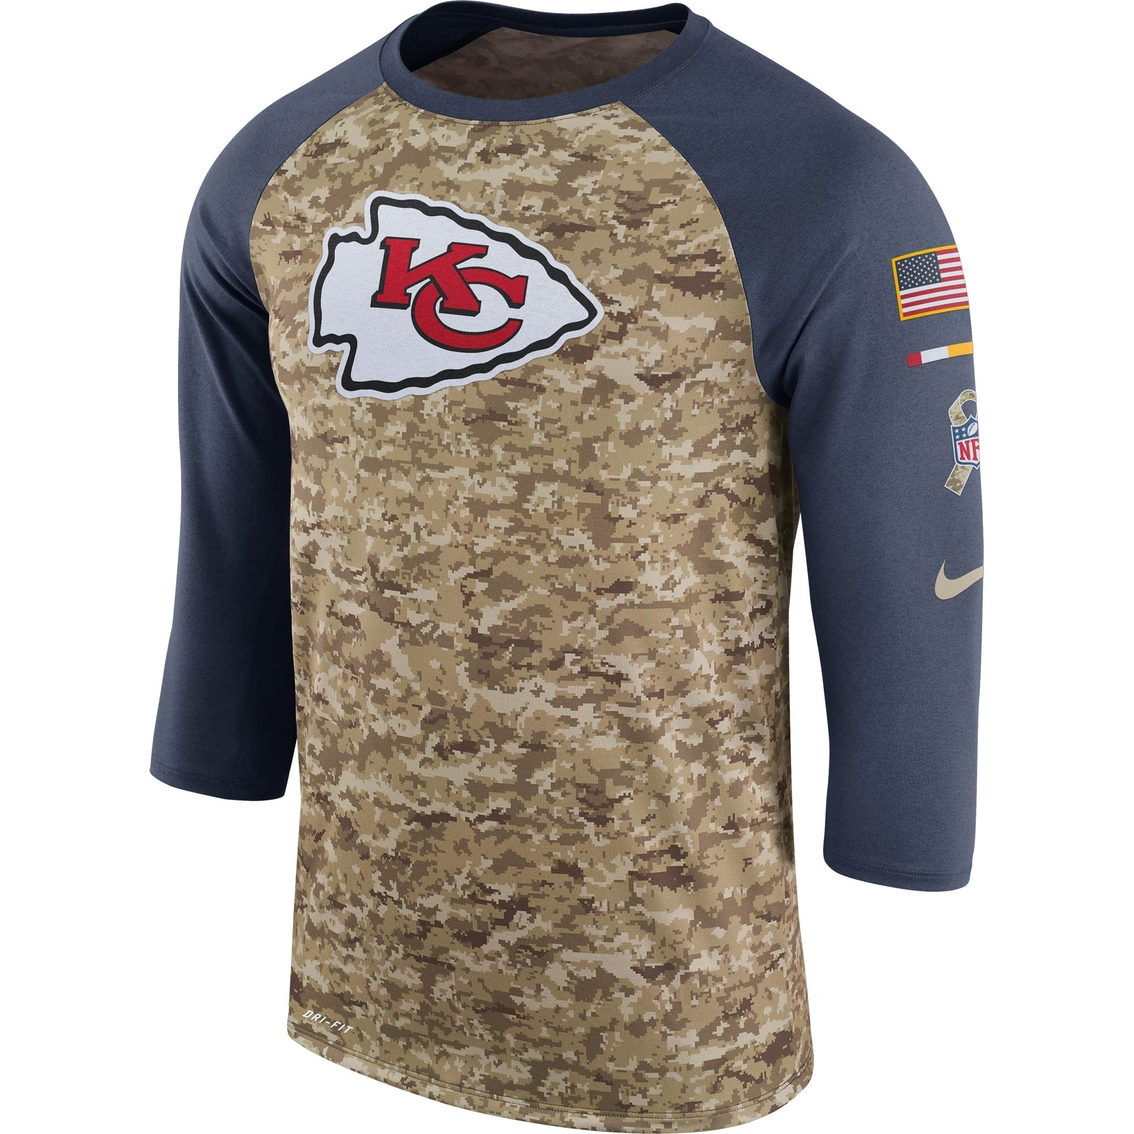 super popular 65b1c 0782d Nike Nfl Kansas City Chiefs Salute To Service Raglan Tee ...